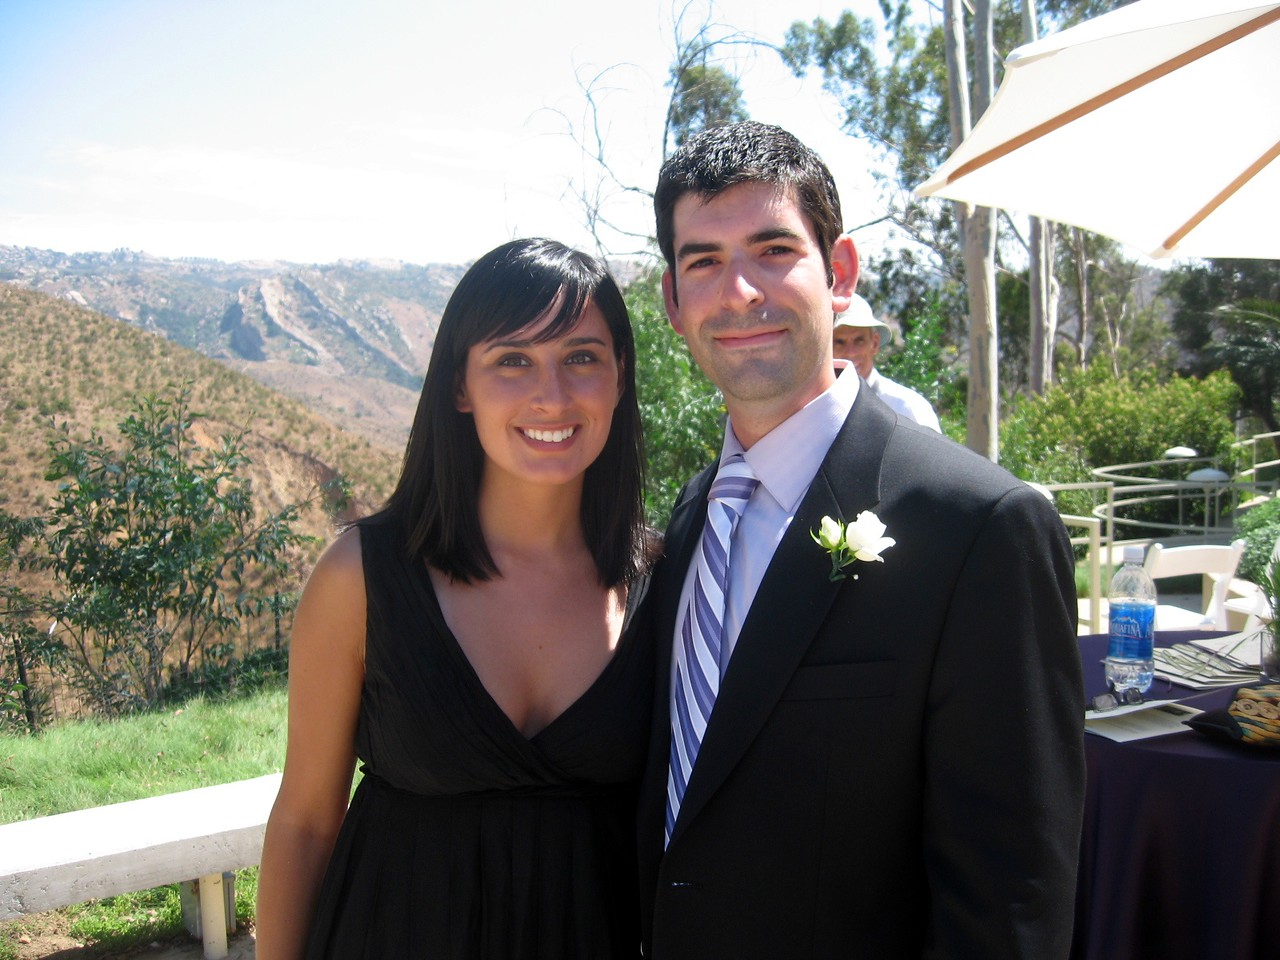 David (brother of the bride) and girlfriend Amber